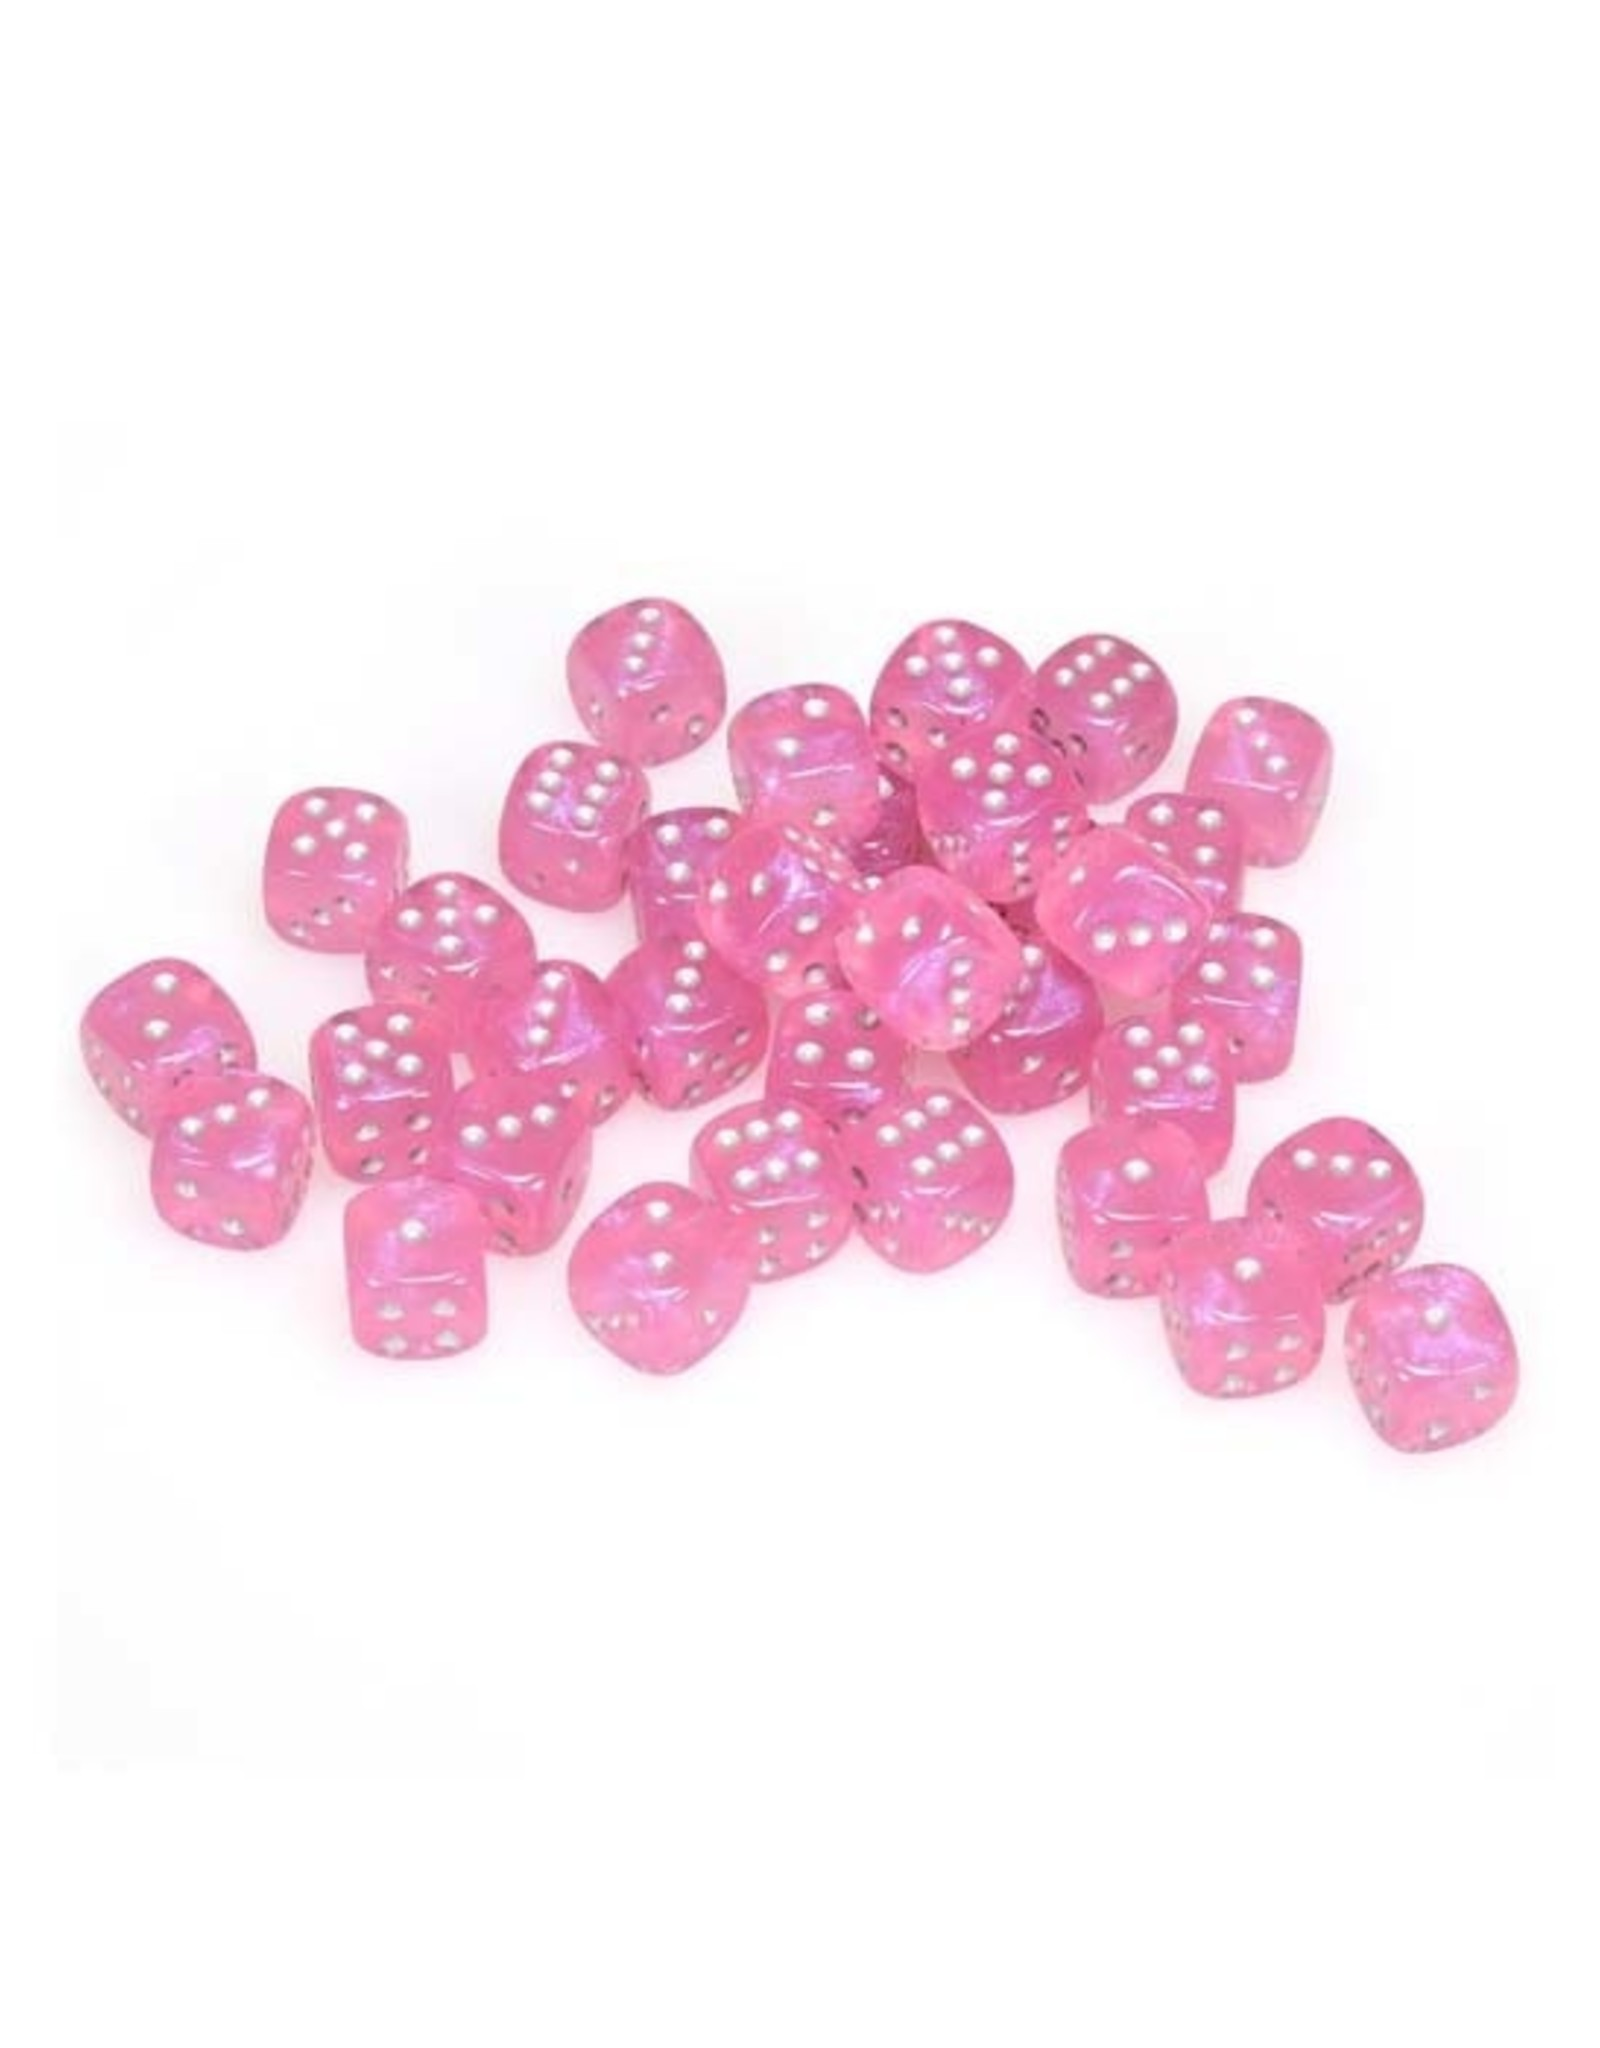 Chessex Chessex: 12mm D6 - Borealis - Pink w/ Silver